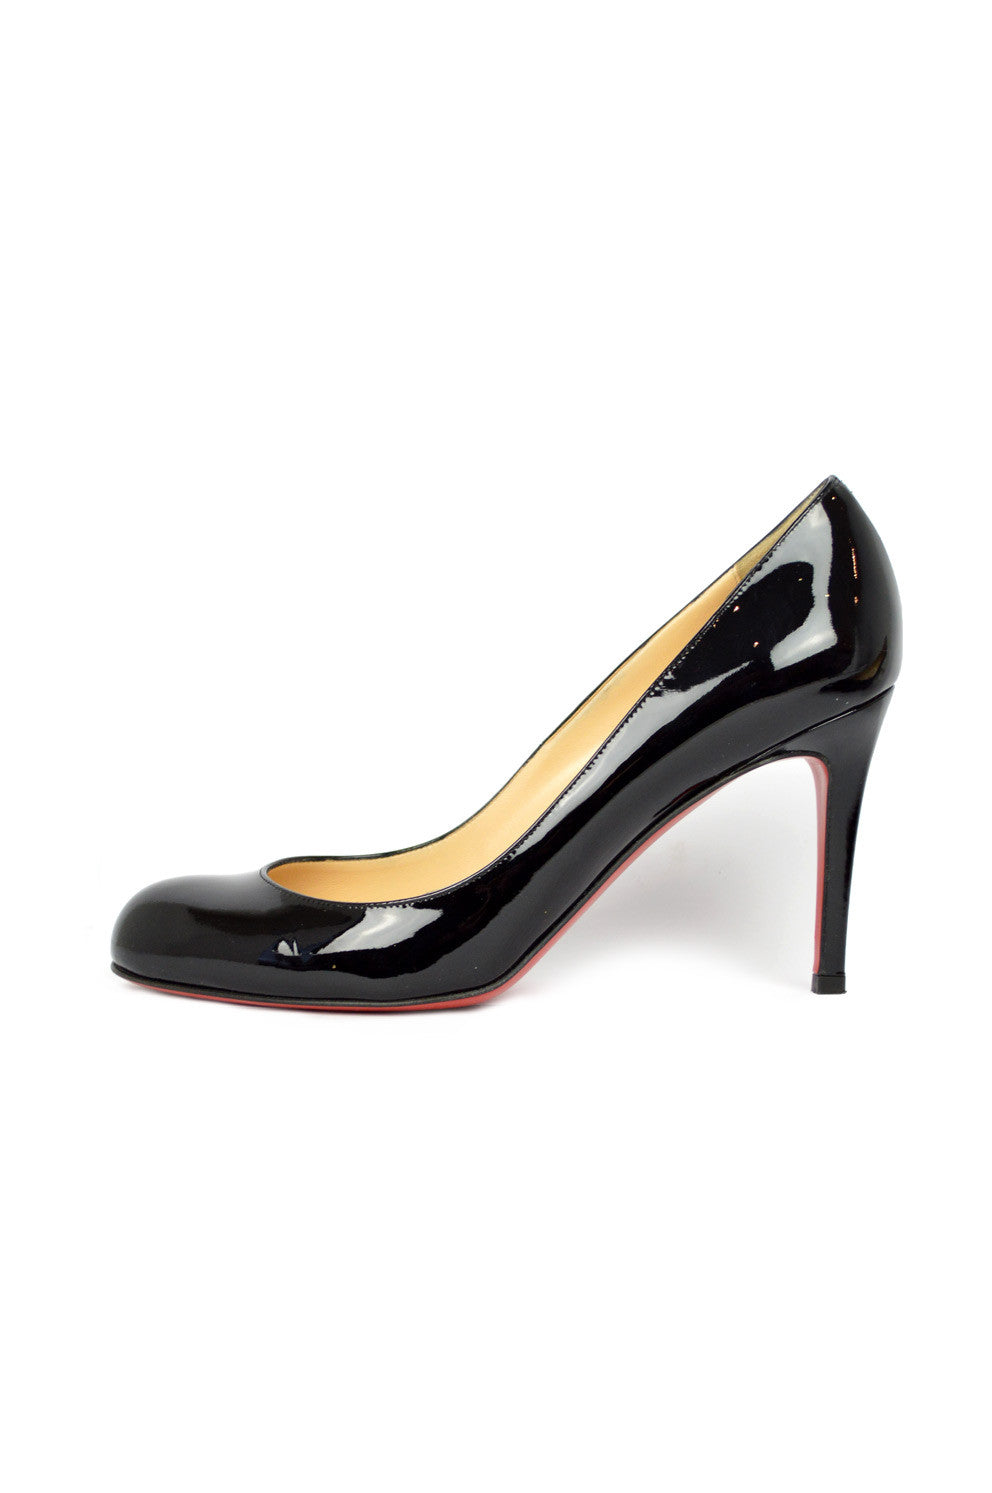 Black Patent Leather Simple Pumps 85